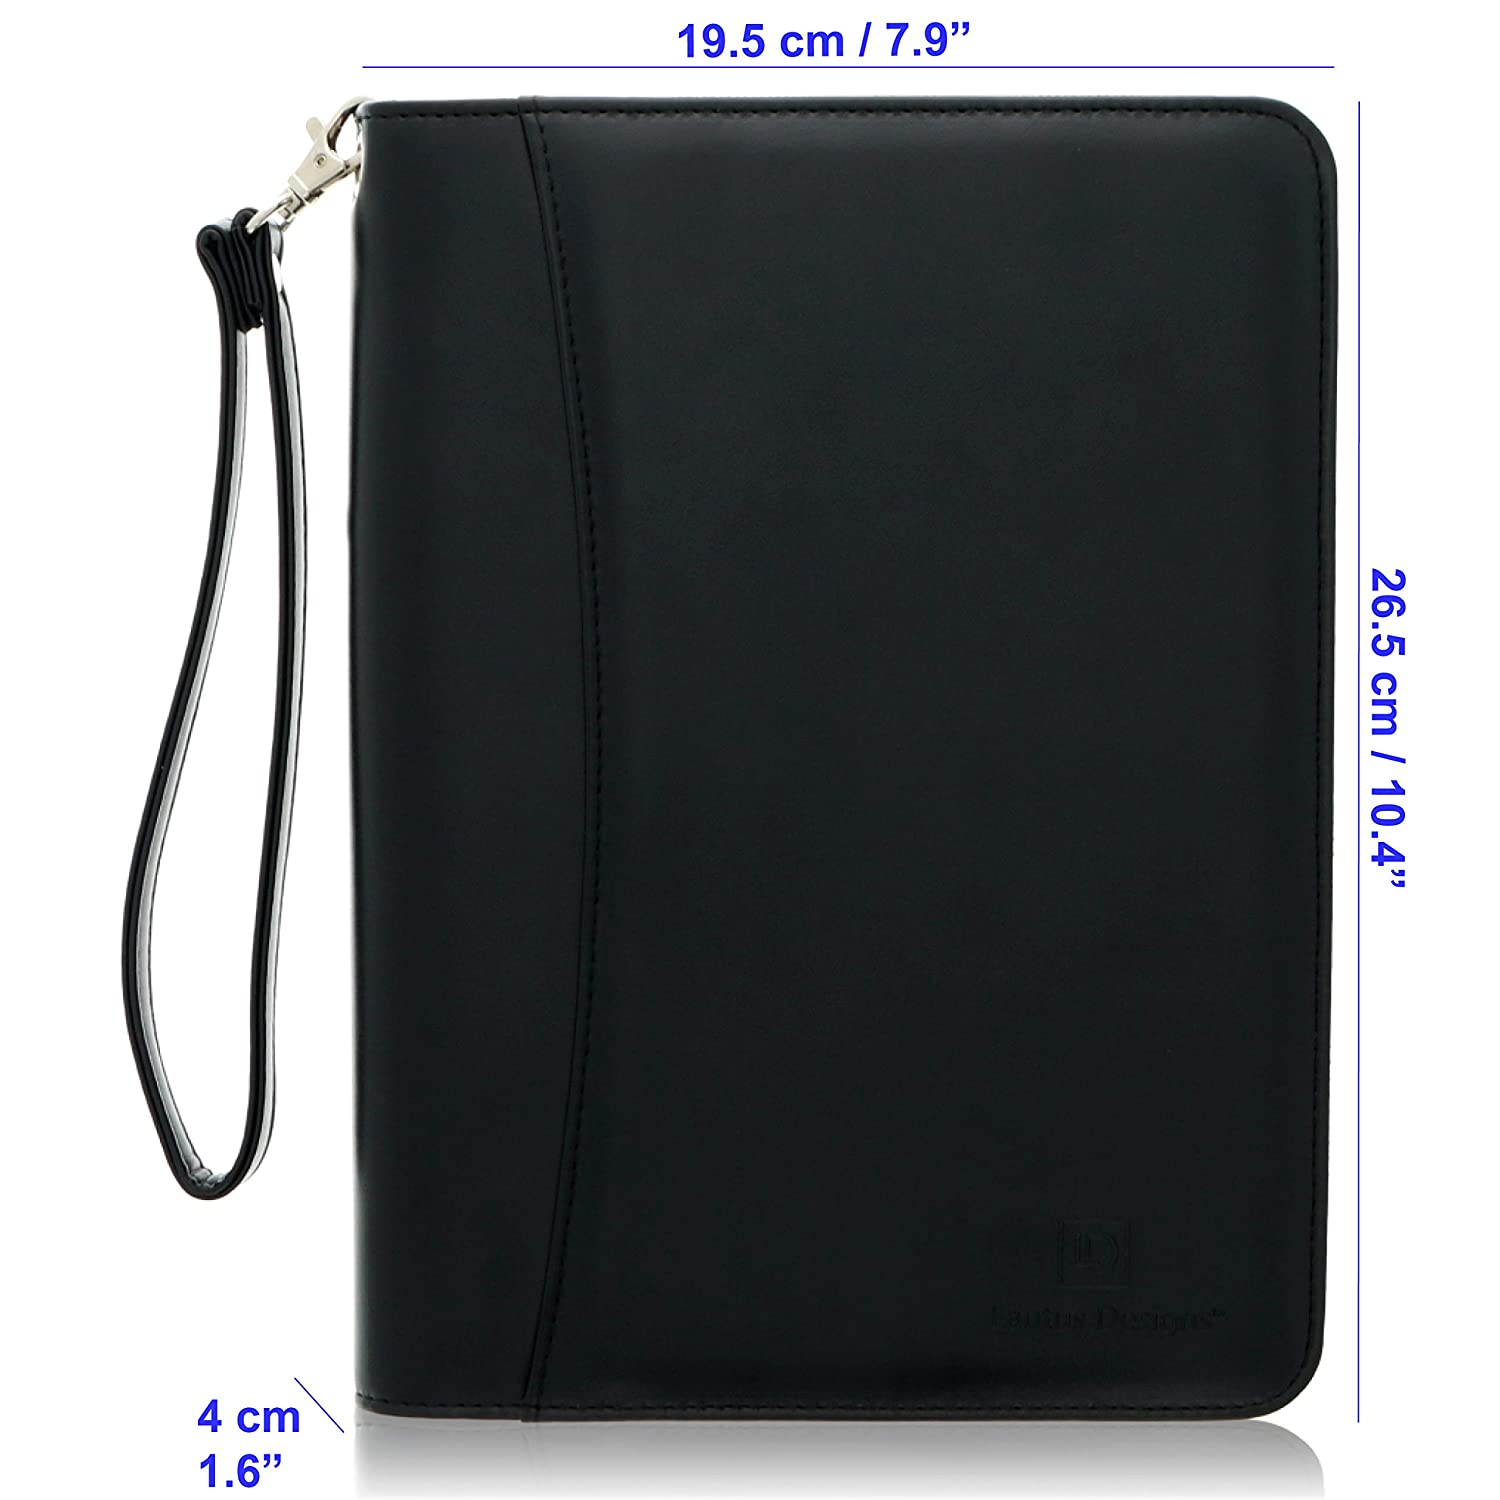 2313bd658d Junior Zippered Padfolio with A5 Notepad - Black PU Leather Business  Portfolio Binder   Organizer Folder with 8 Inch Tablet Sleeve by Lautus  Designs  Sigel ...